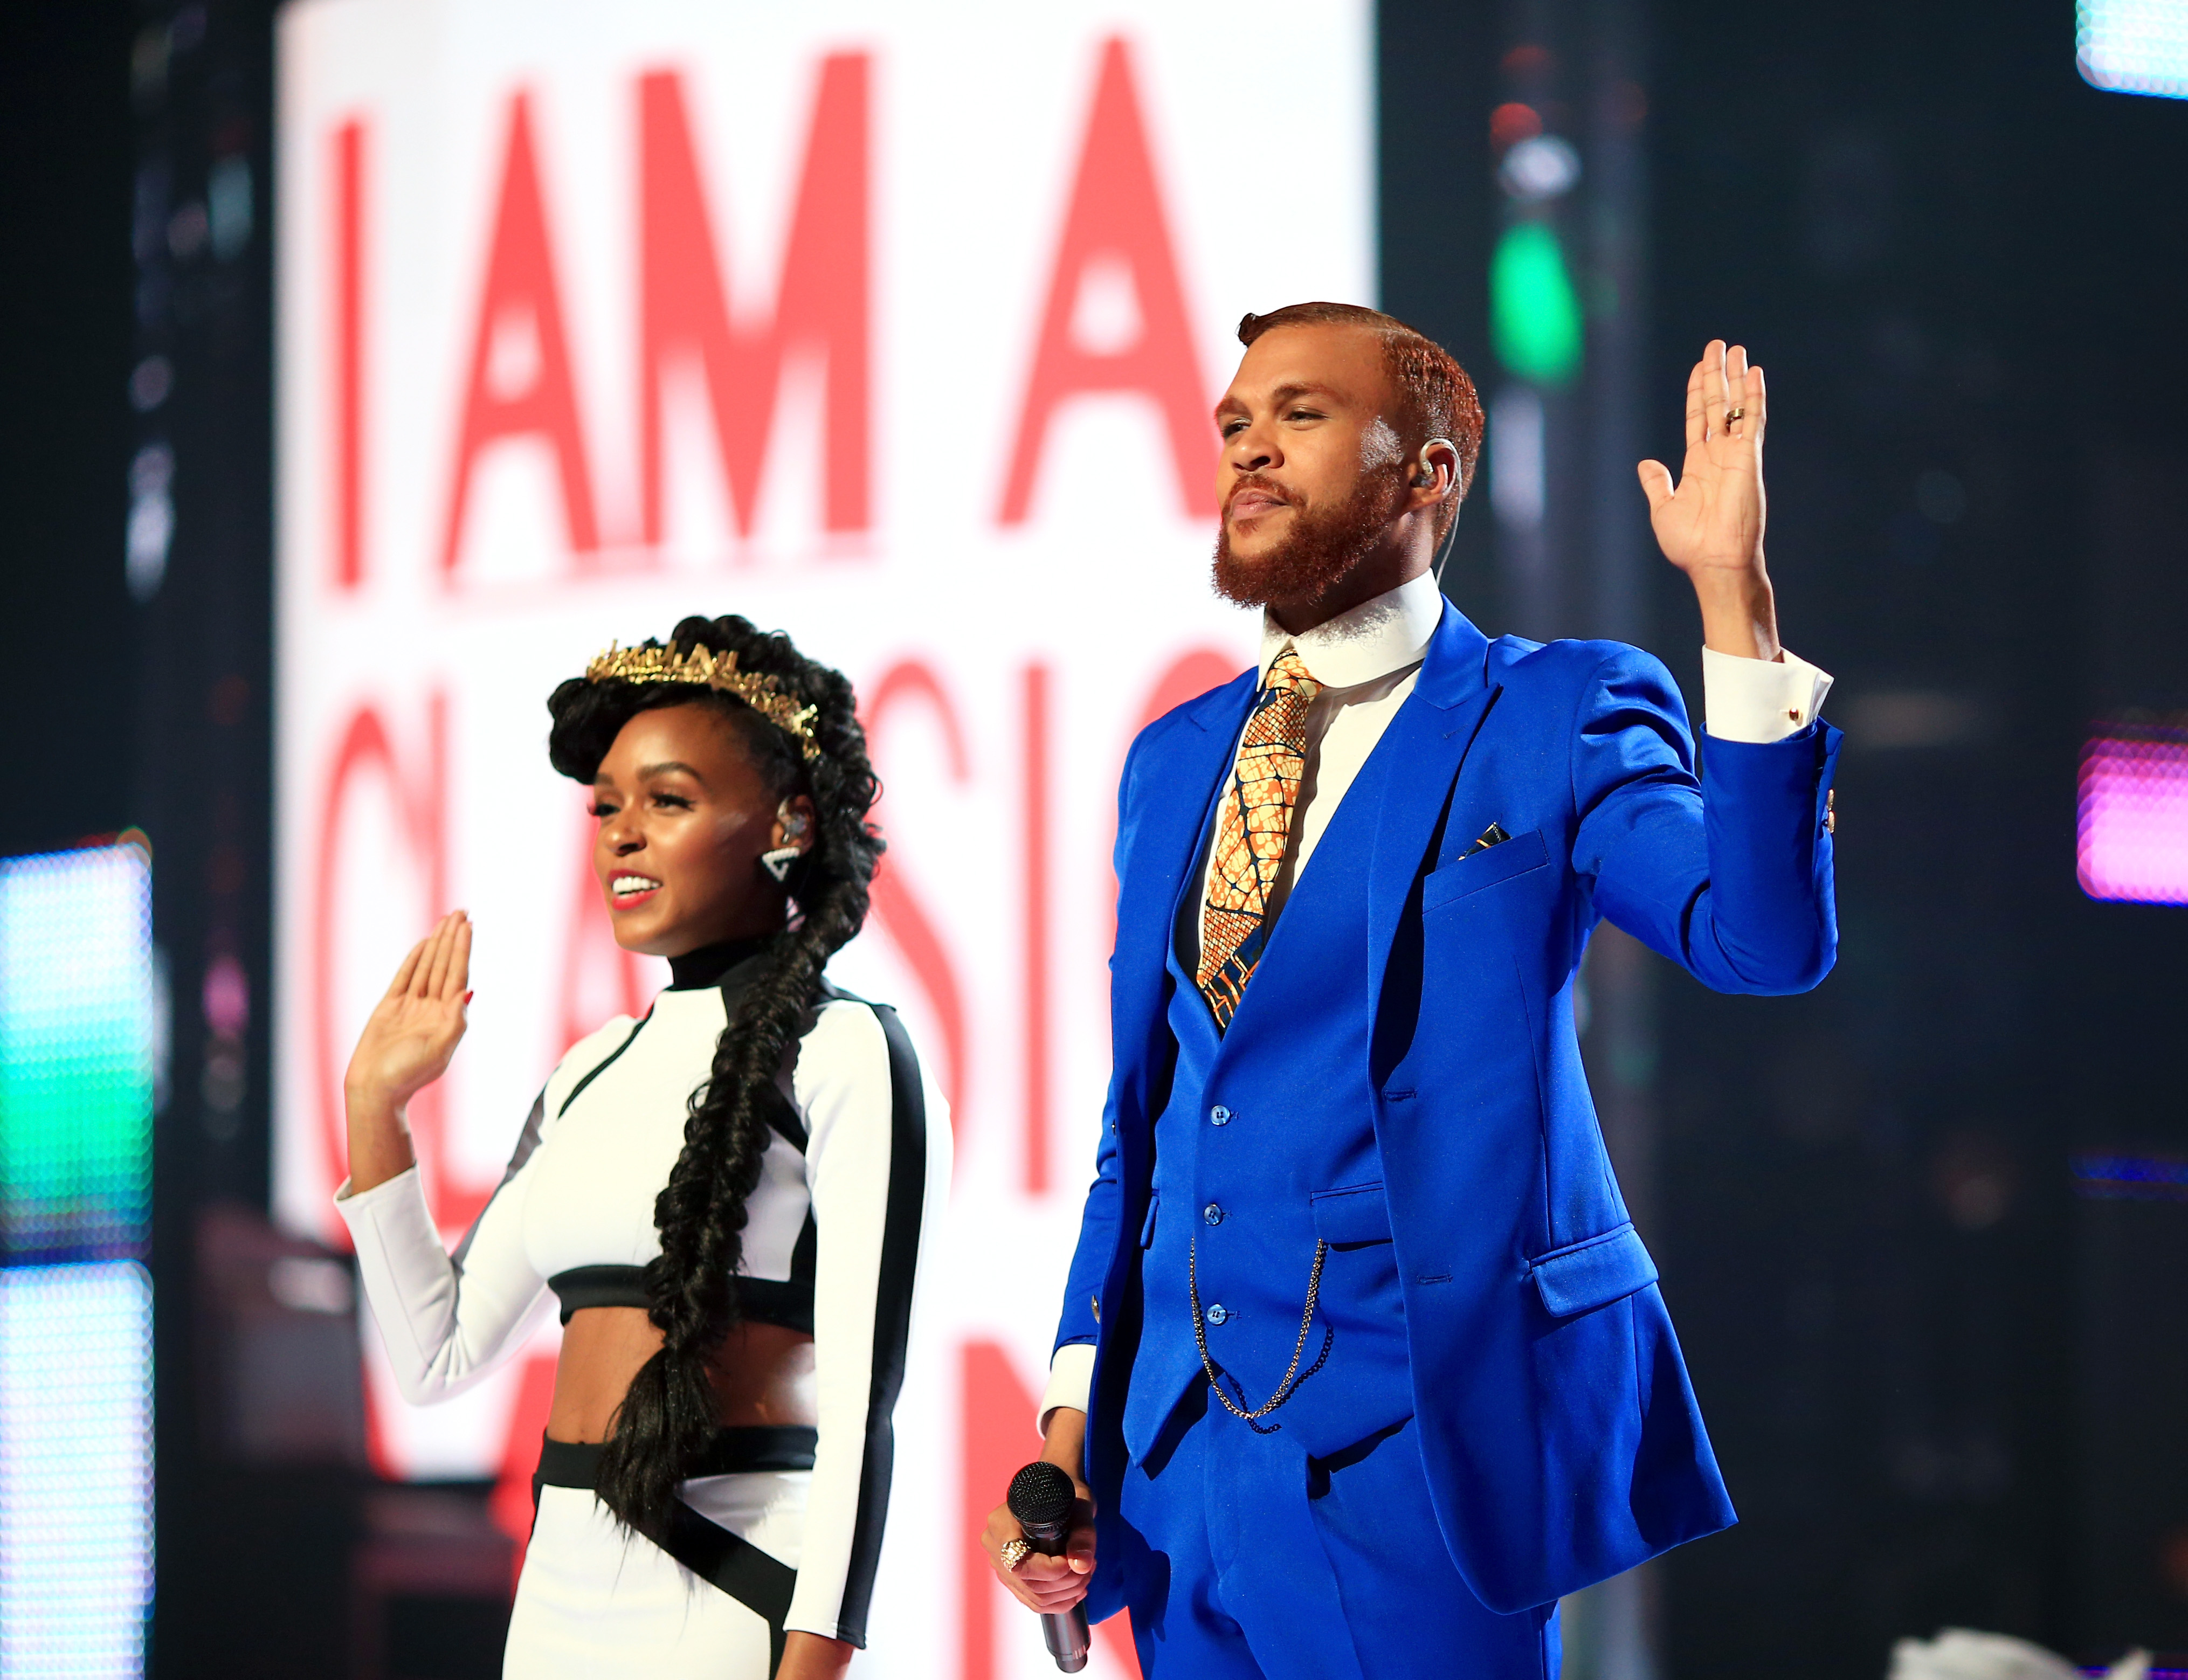 Jidenna Talks About His Clothing Style & His Sexuality